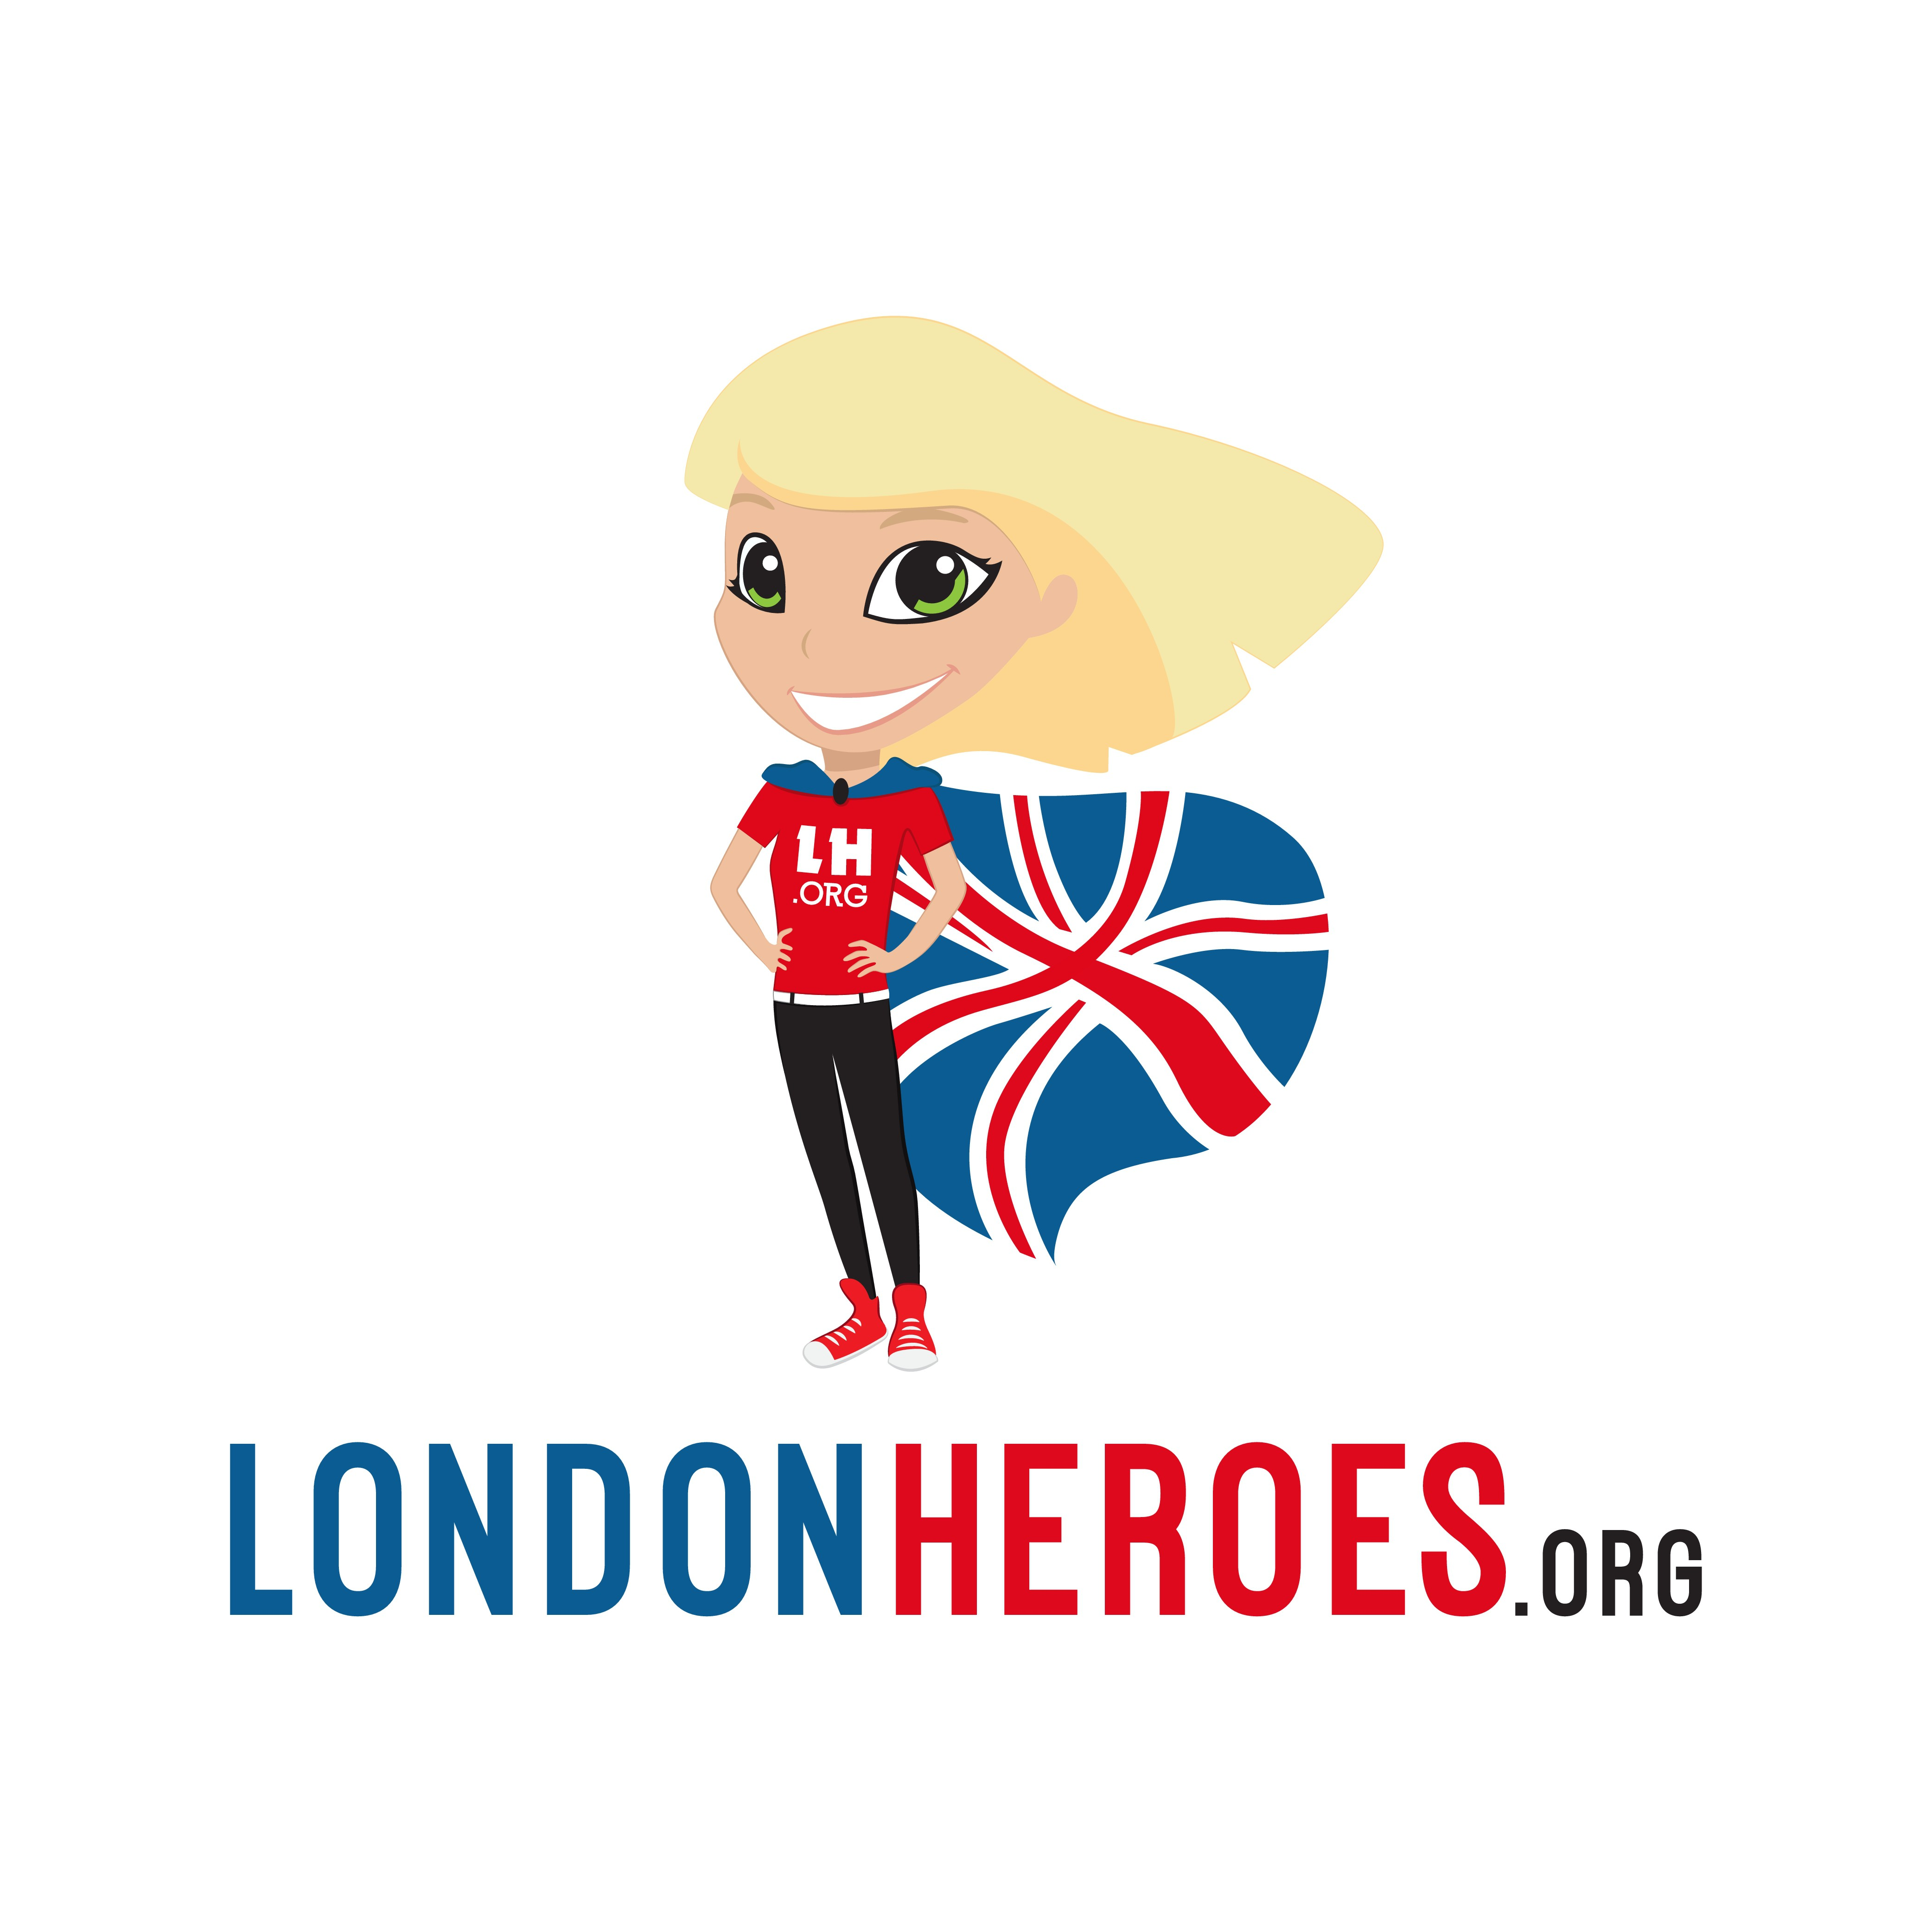 Create the character of a London hero as a logo for londonheroes.org